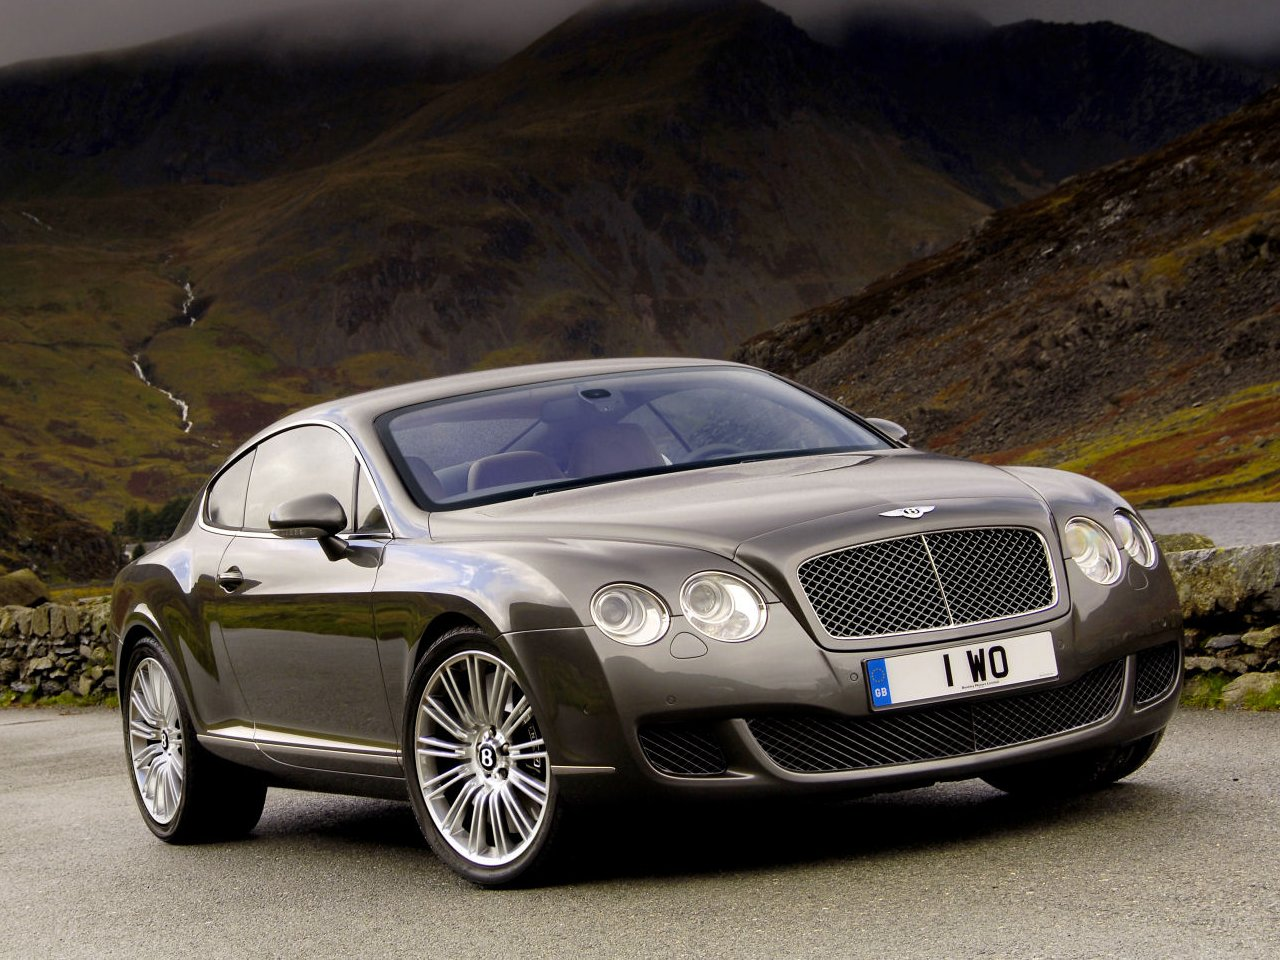 cars and cars 2010 bentley continental gt. Black Bedroom Furniture Sets. Home Design Ideas